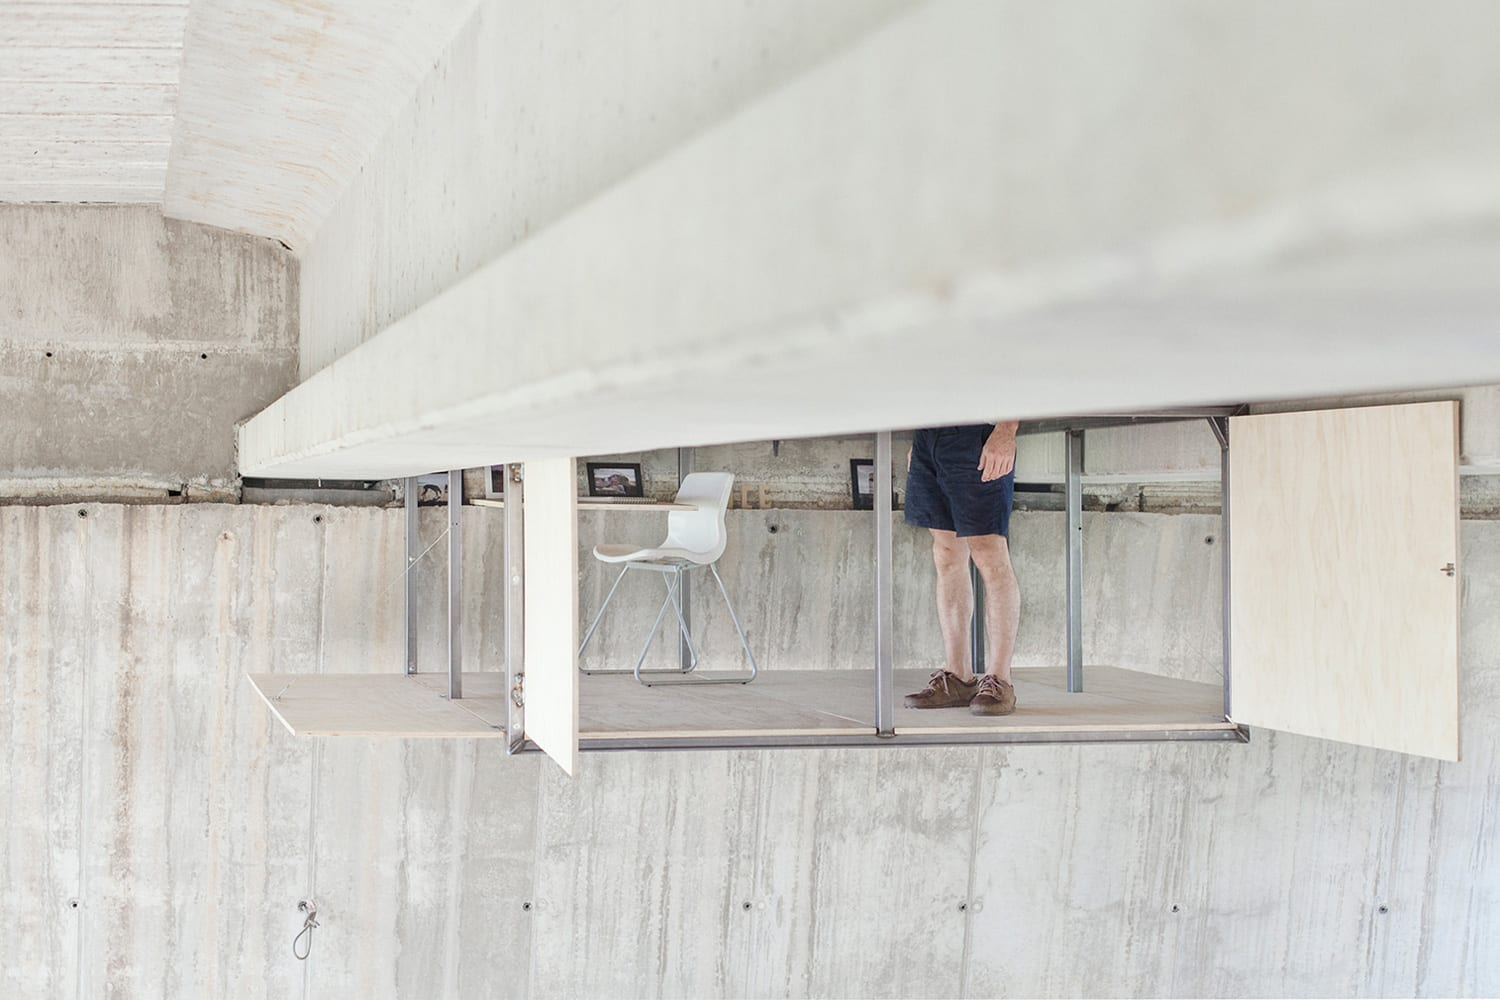 Fernando Abellanas Designs Secret Studio Under Bridge in Spain | Yellowtrace